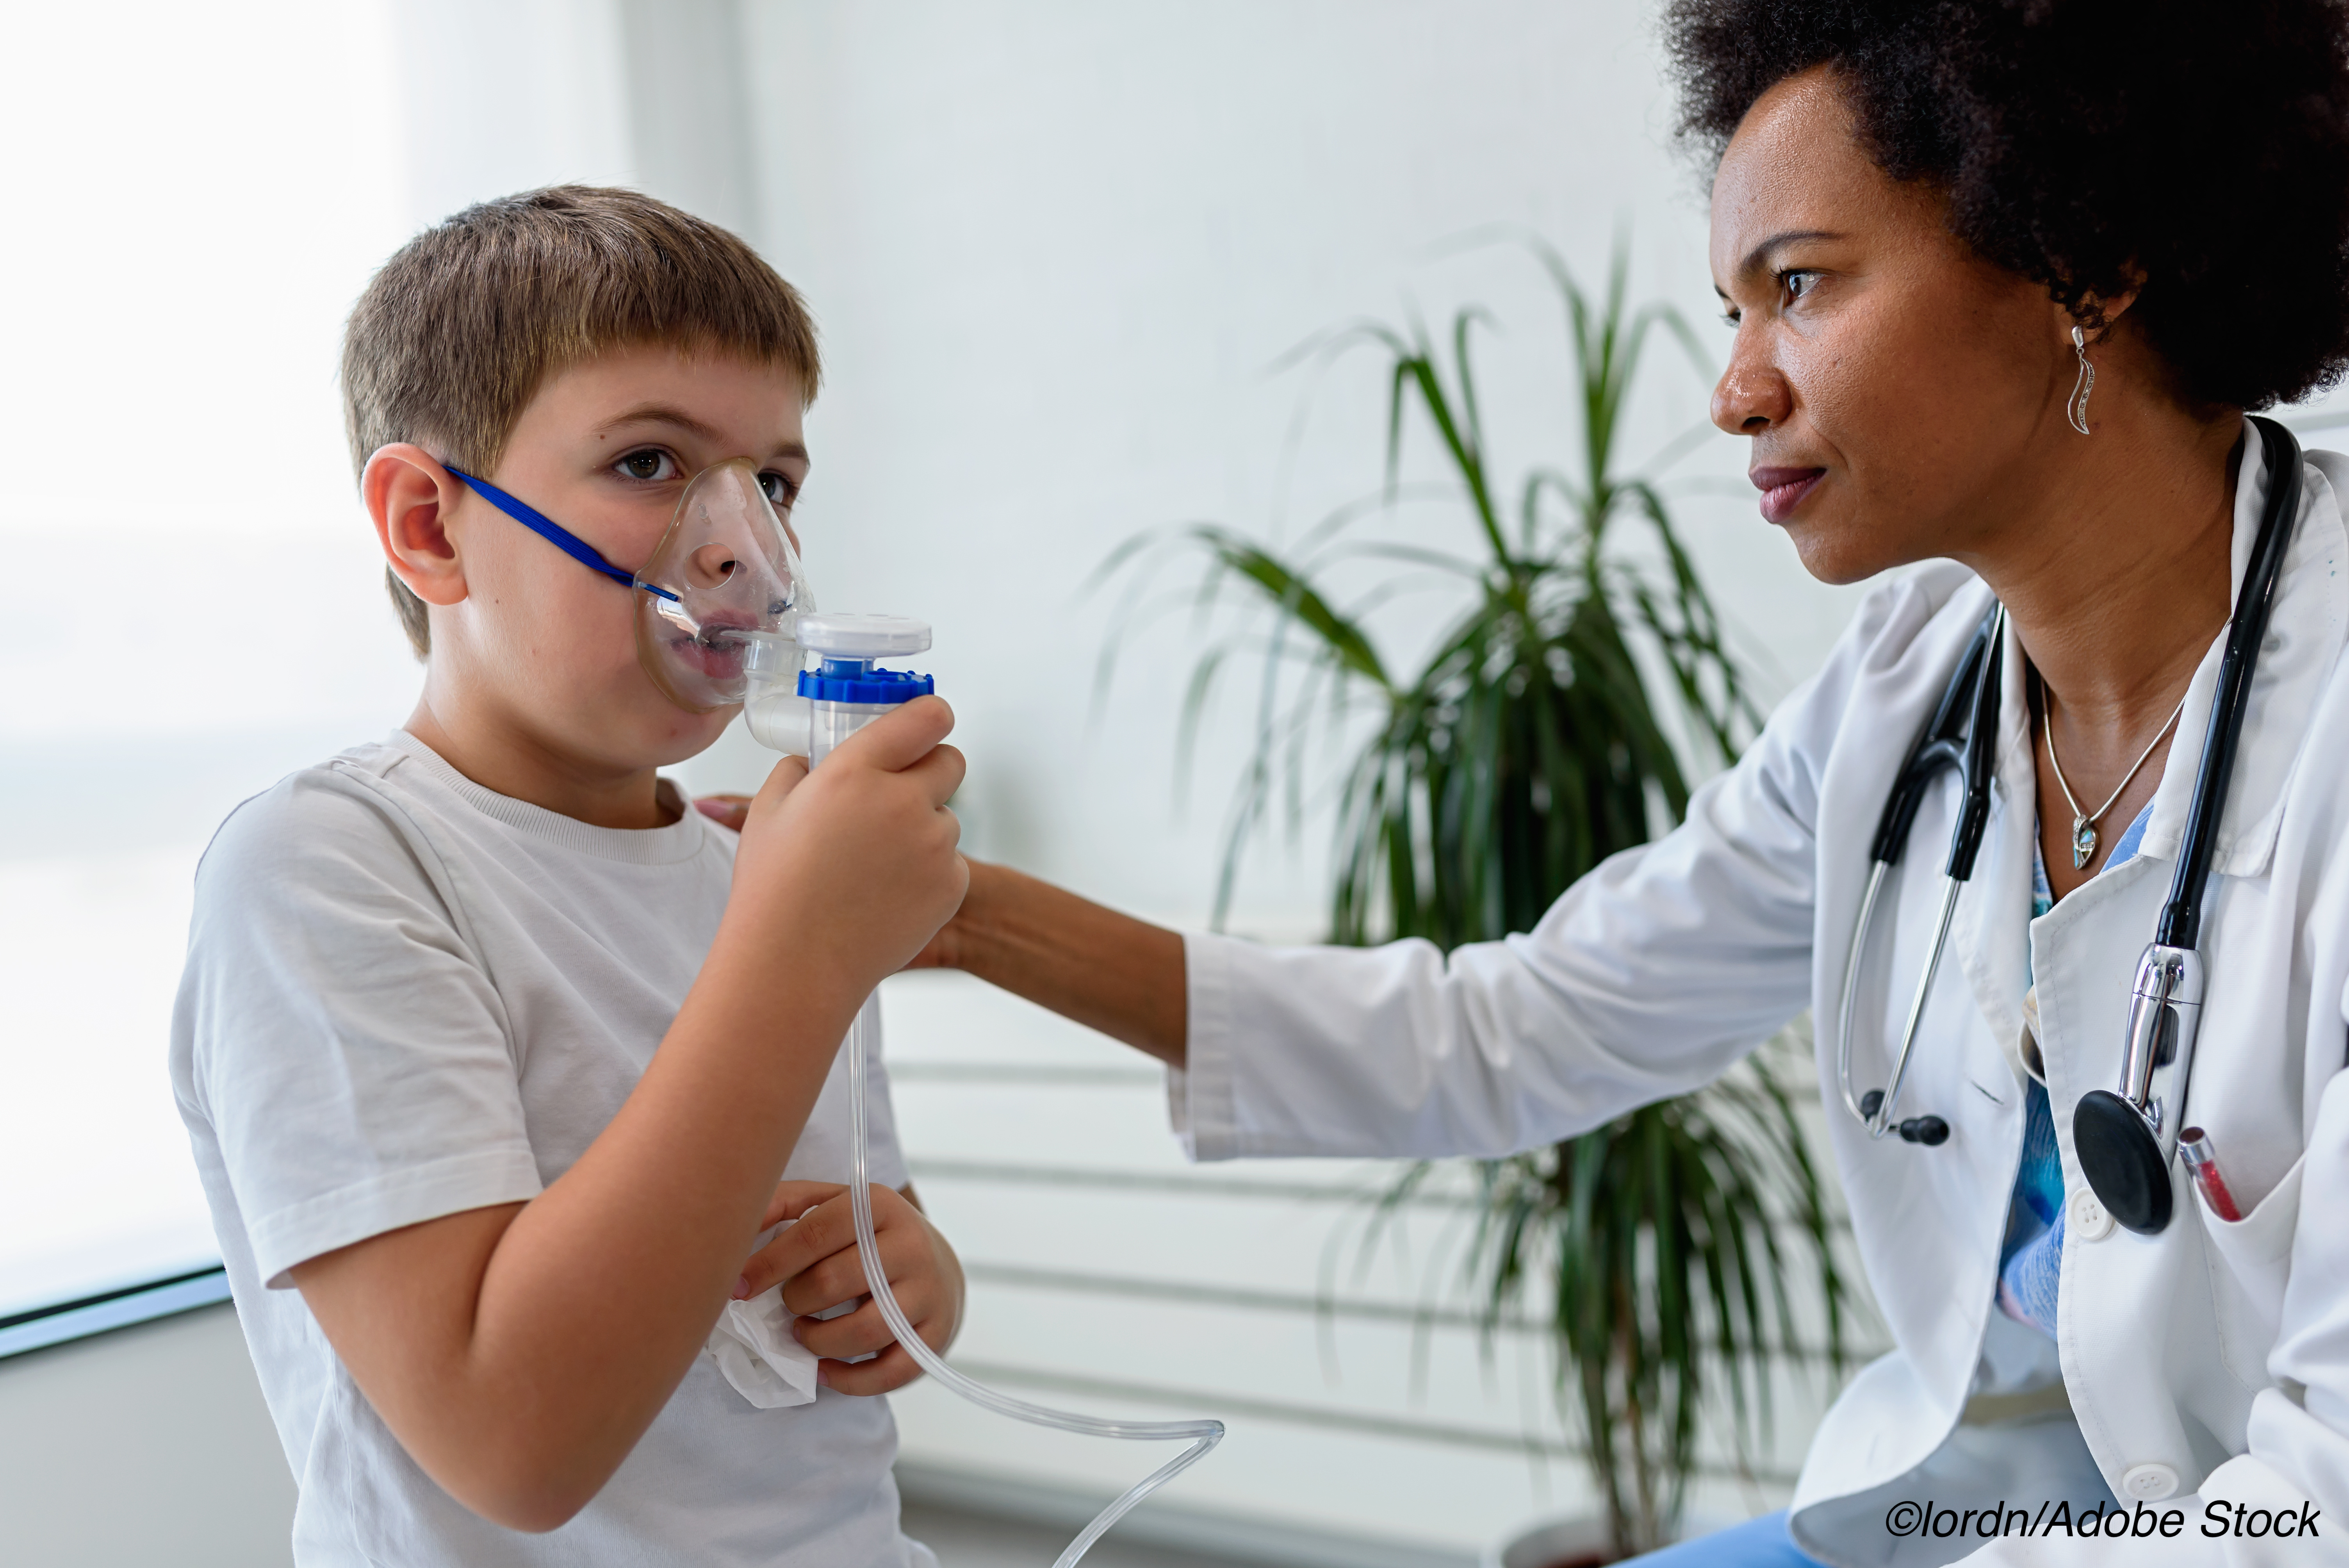 Nebulized Magnesium of Little Value for Emergency Tx of Kids' Asthma Attacks